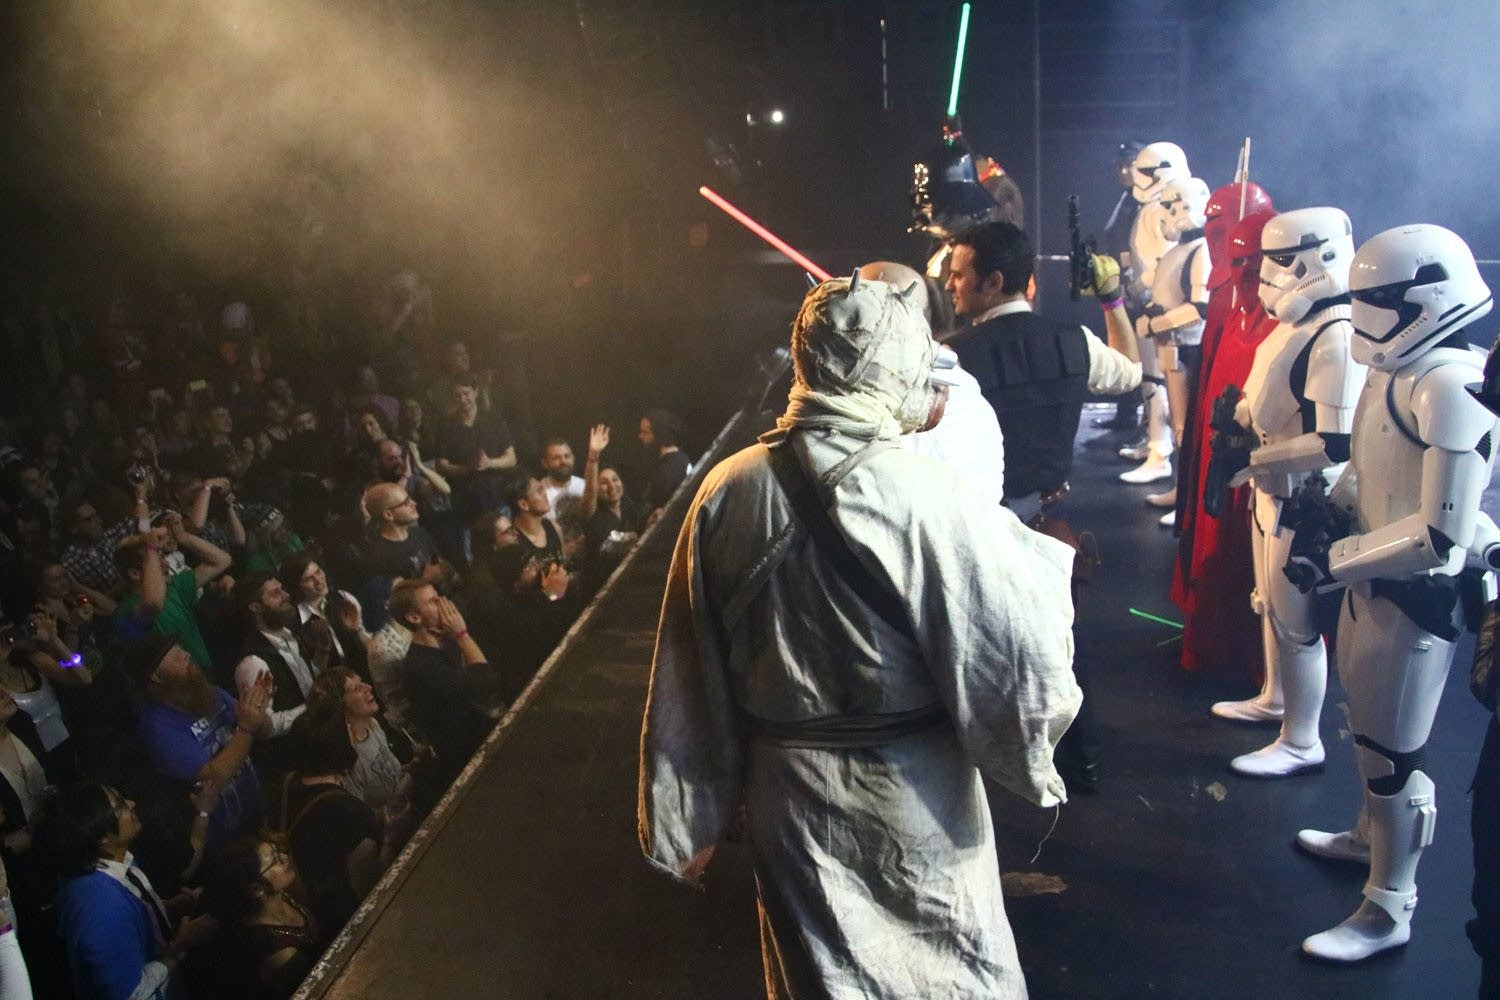 Star Wars characters onstage at First Avenue 2